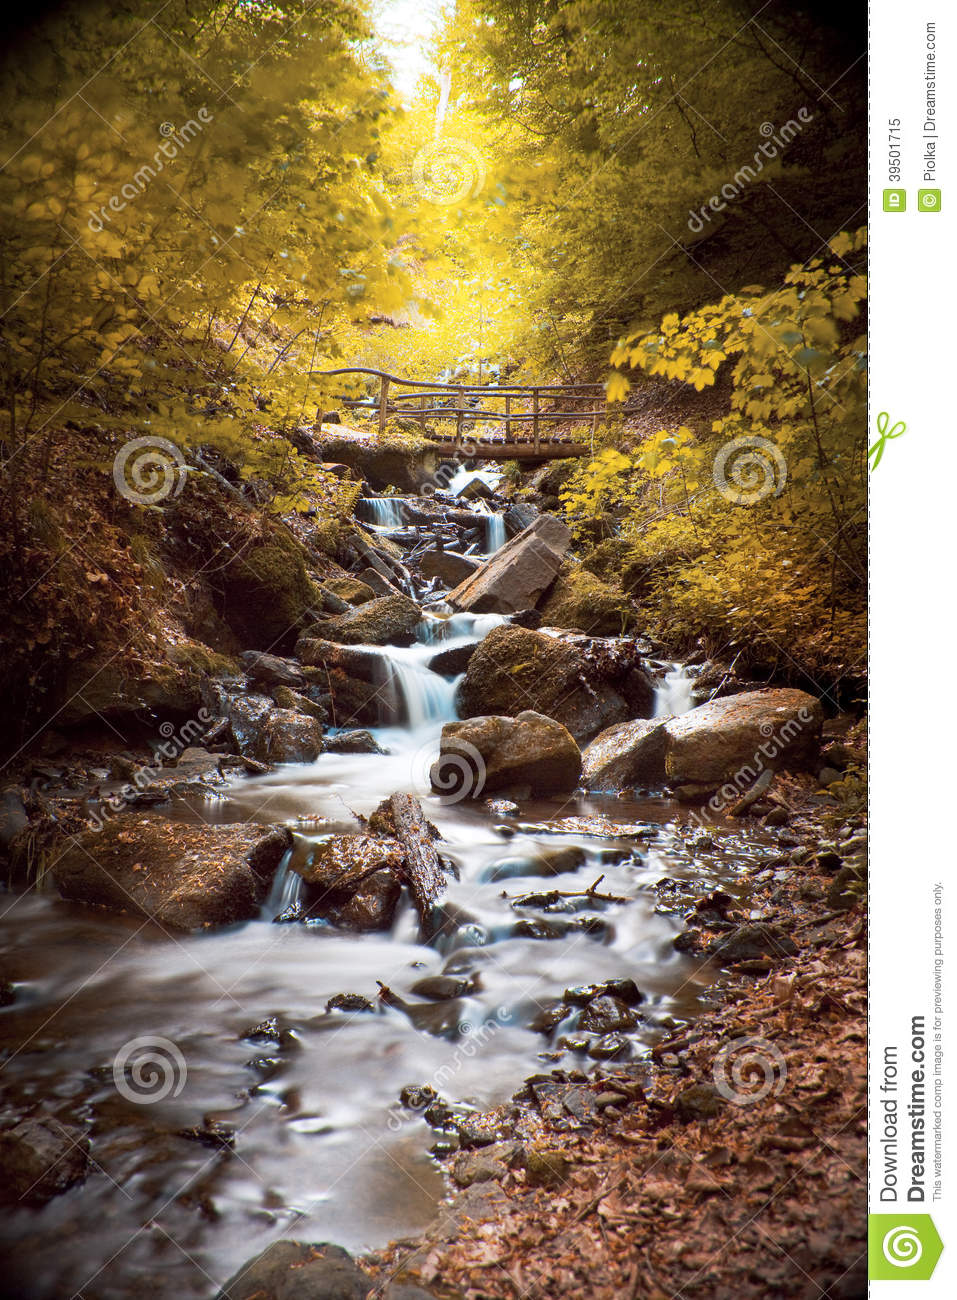 Waterfall with rocks in a autumn landscape